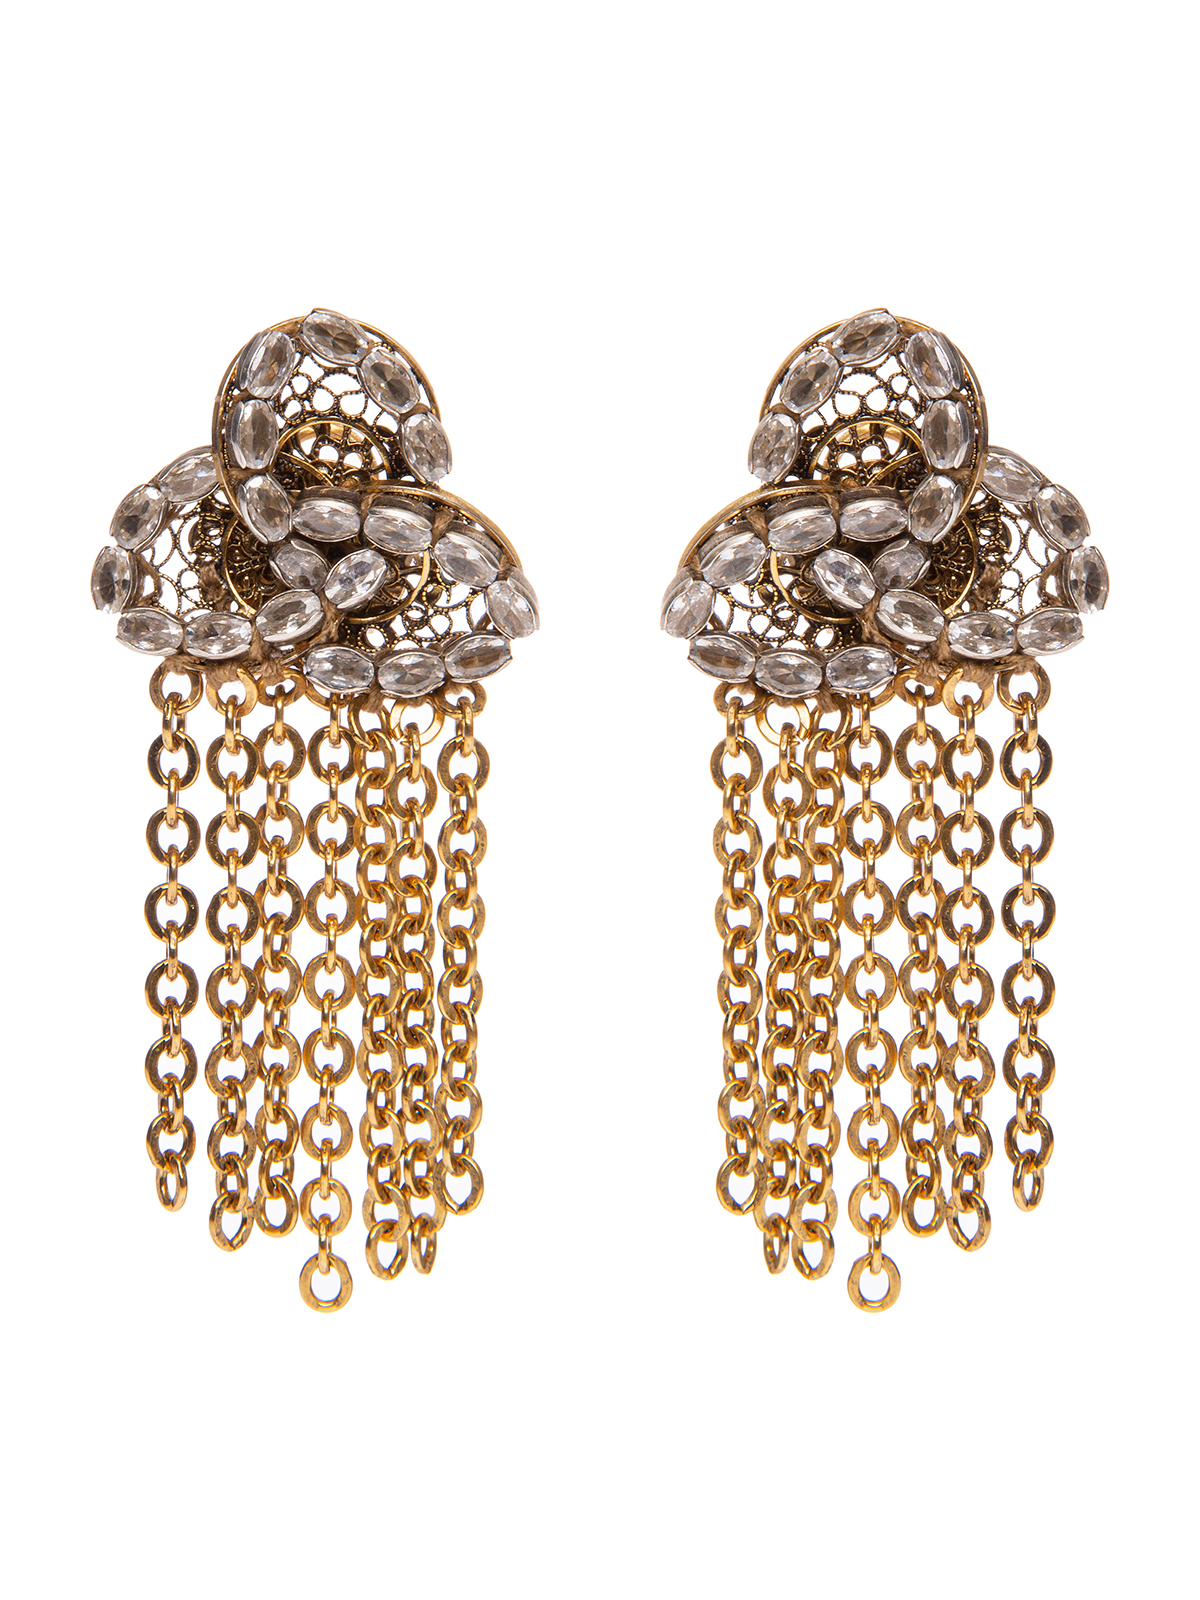 Earrings with crystal petals and chain cascade